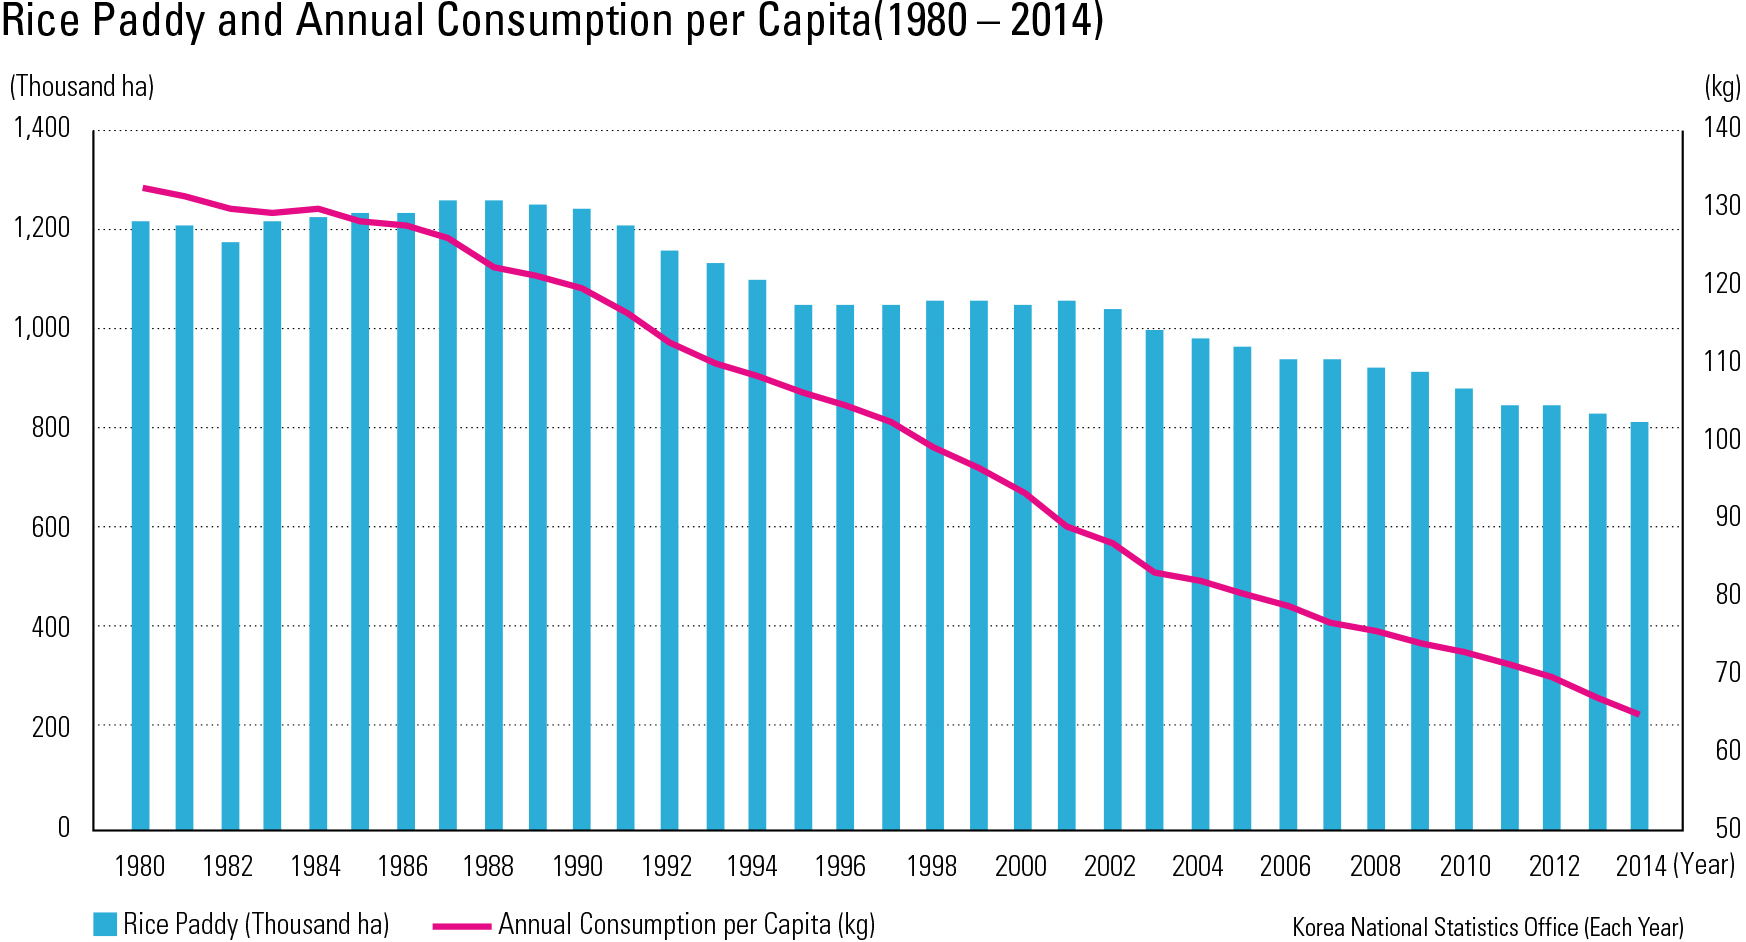 "Rice Paddy and Annual Consumption per Capita(1980 – 2014)<p class=""oz_zoom"" zimg=""http://imagedata.cafe24.com/us_3/us3_162-2_2.jpg""><span style=""font-family:Nanum Myeongjo;""><span style=""font-size:18px;""><span class=""label label-danger"">UPDATE DATA</span></span></p>"